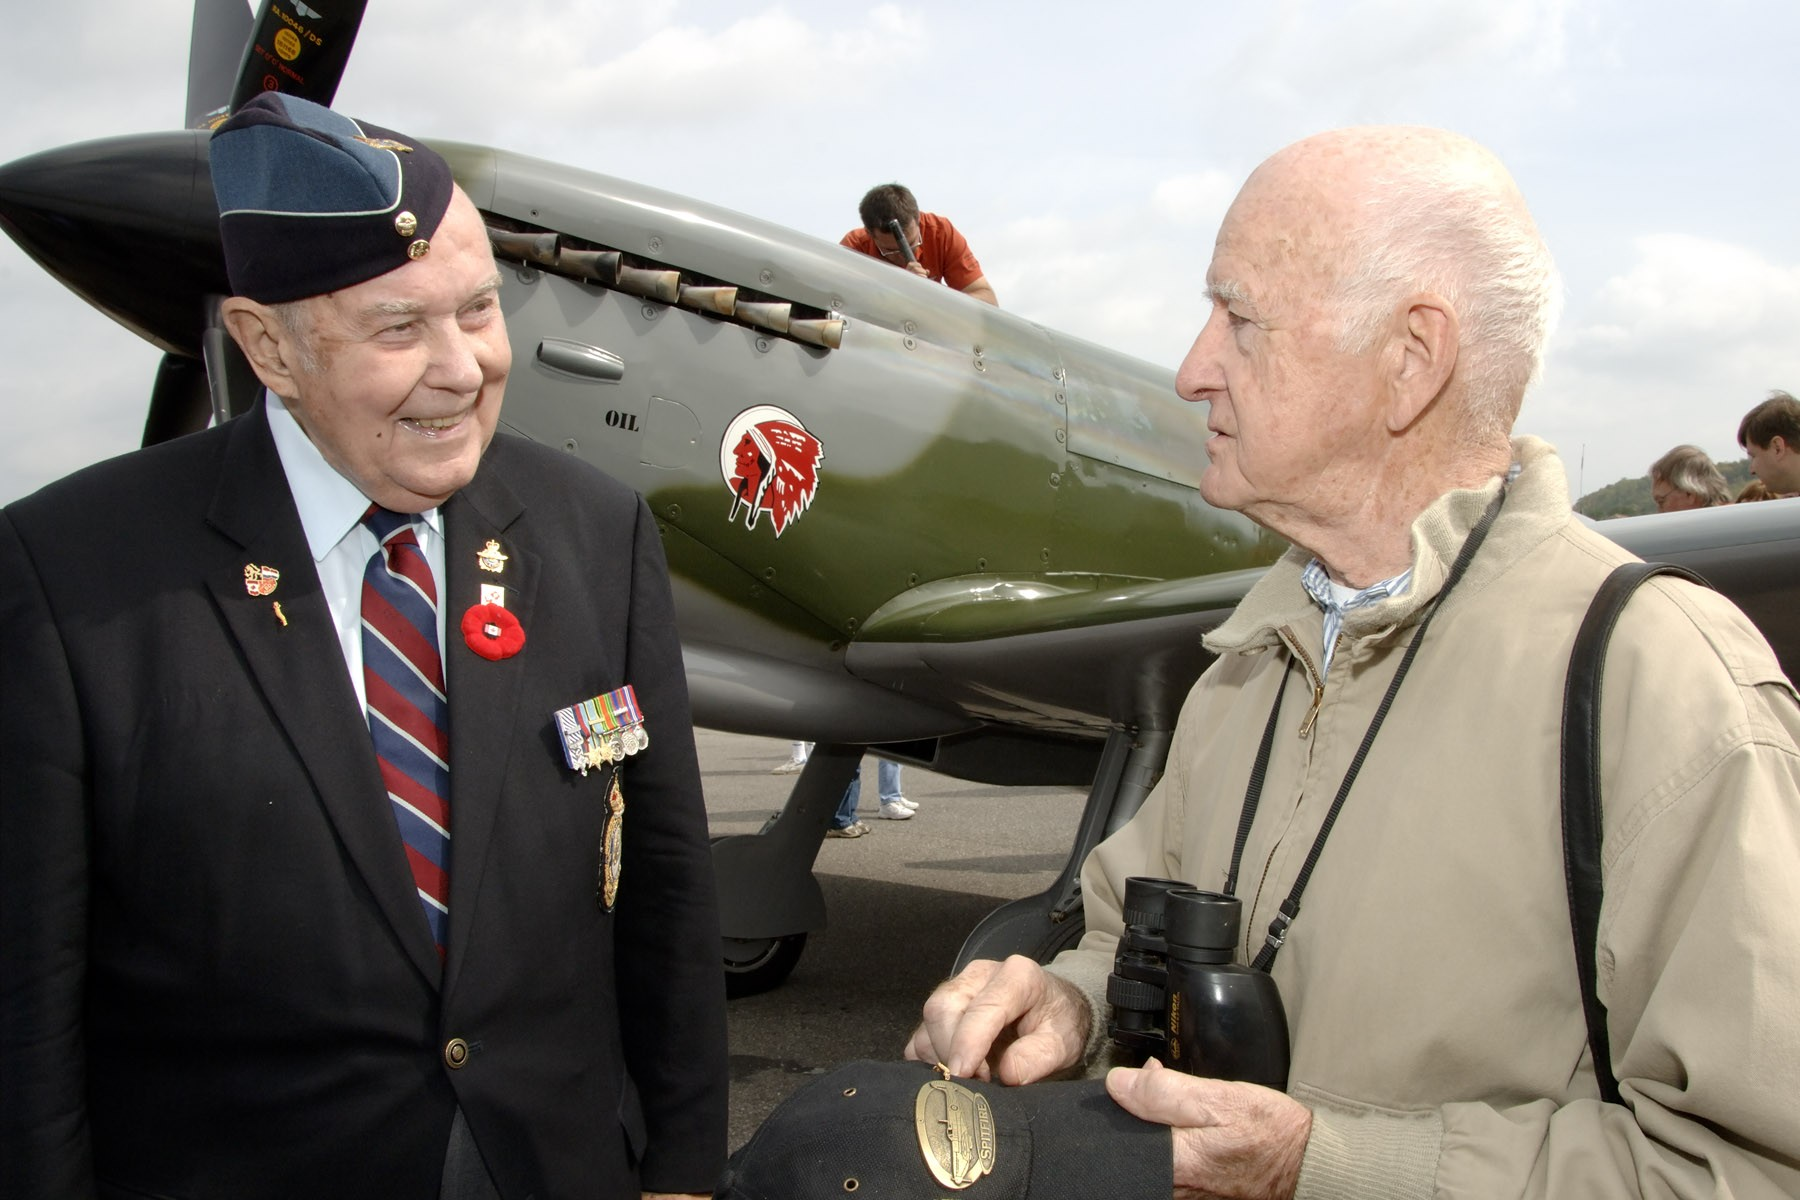 Flight Lieutenant (retired) Charley Fox (left), who was the honorary colonel of 412 Transport Squadron, and Vernon Mullen stand in front of a Spitfire, similar to the ones they flew in during the Second World War, following the 2006 national Battle of Britain ceremony in Ottawa. Honorary Colonel Fox died in October 2008. PHOTO: Warrant Officer Serge Peters